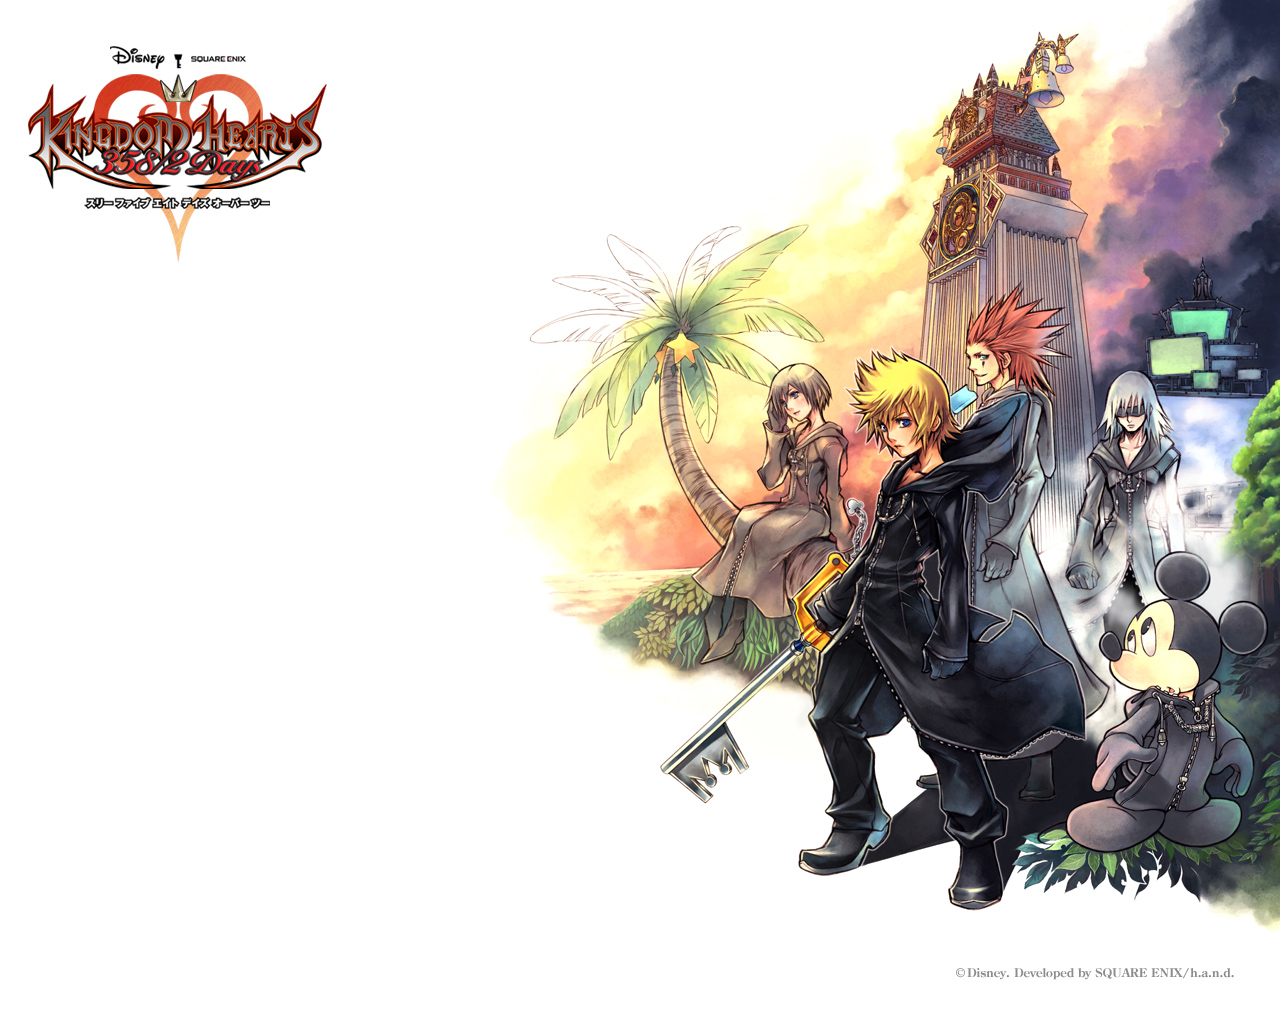 Fond ecran wallpaper Kingdom Hearts 358 2 Days   JeuxVideofr 1280x1024